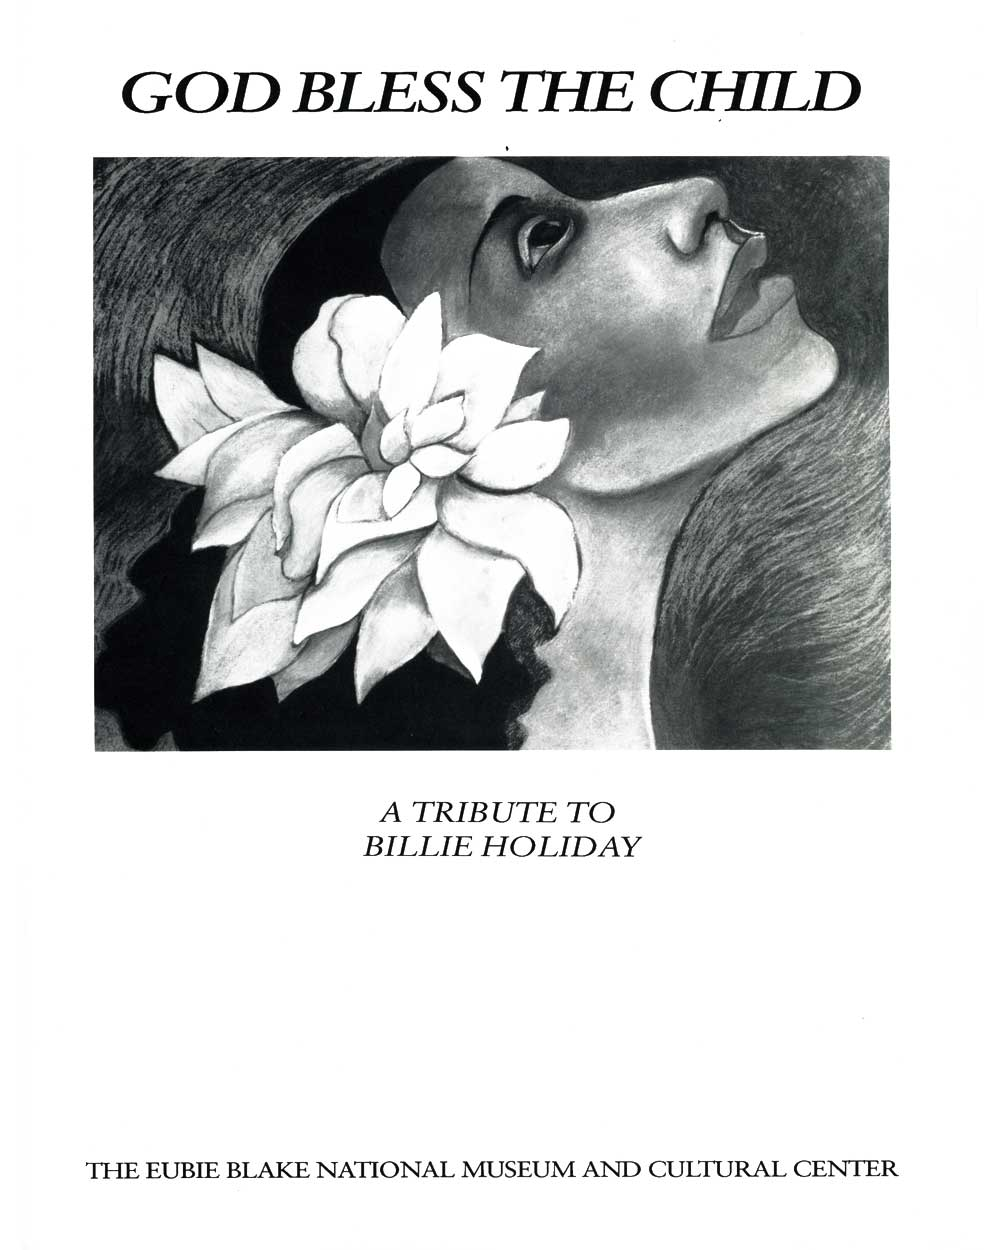 God Bless the Child, exhibition catalog, cover